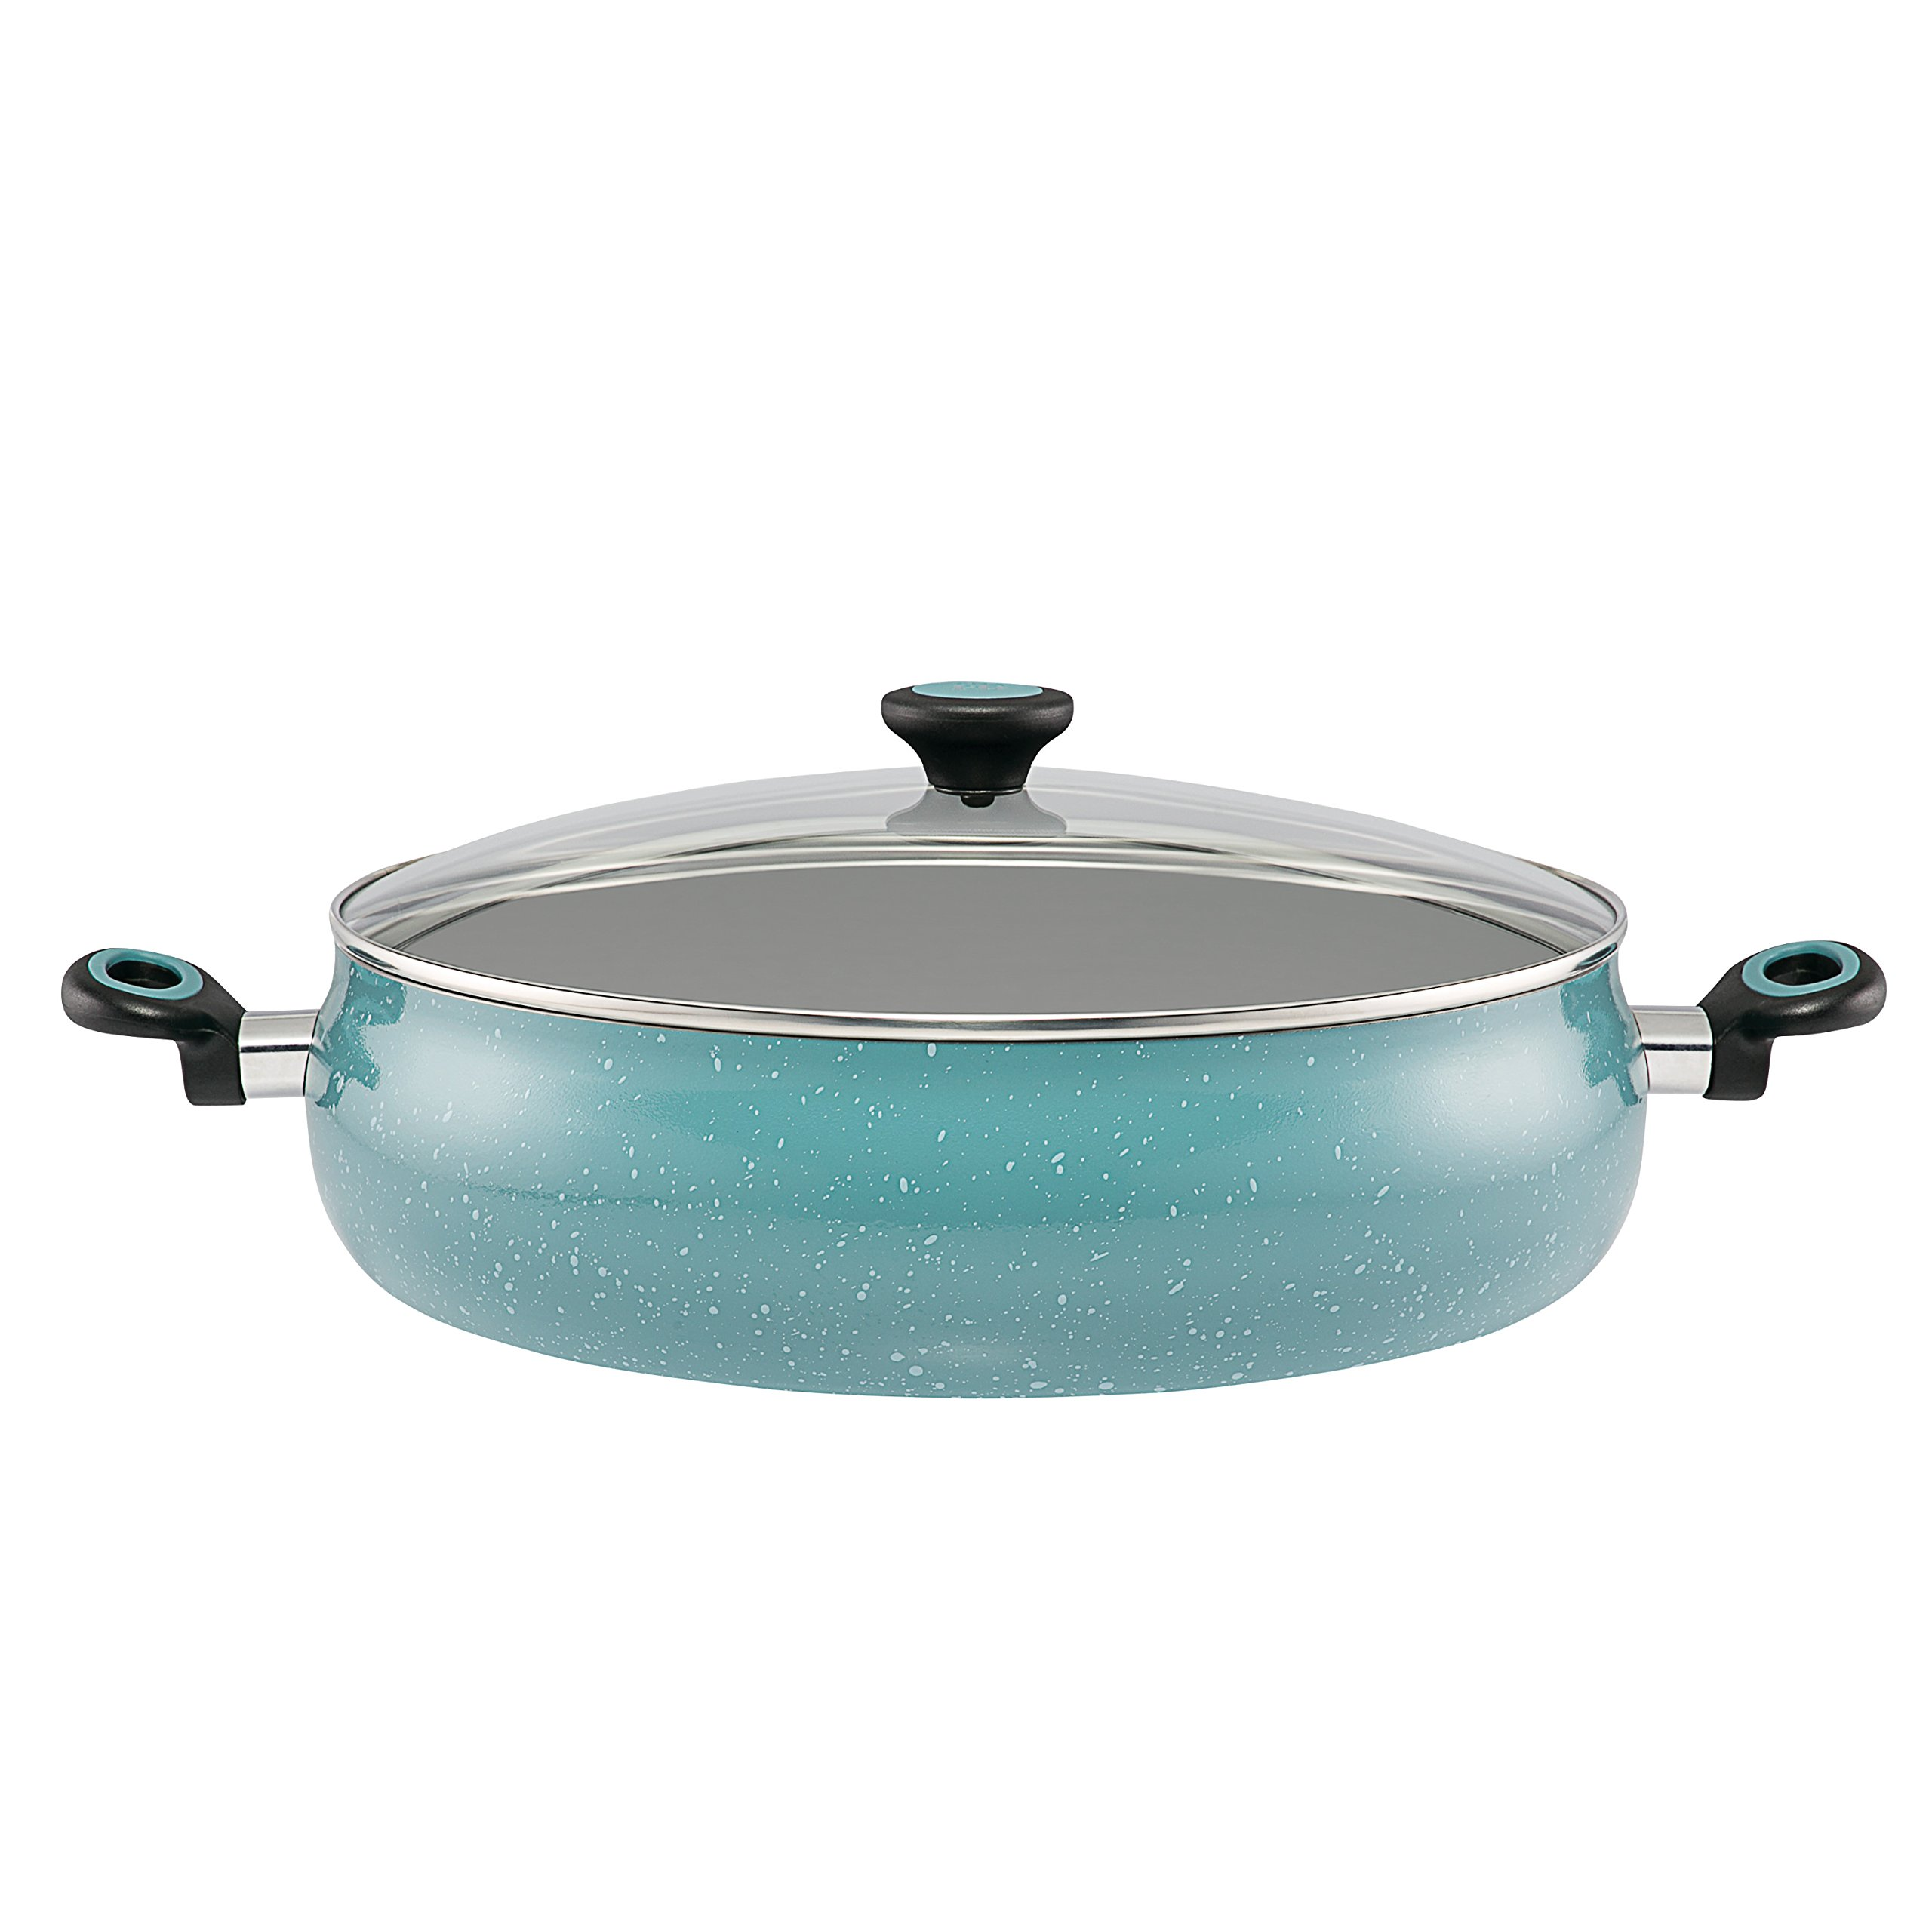 Paula Deen Riverbend Aluminum Nonstick Covered Family Gathering Pan/Large Jumbo Cooker, 10-Quart, 13.75-Inch, Gulf Blue Speckle